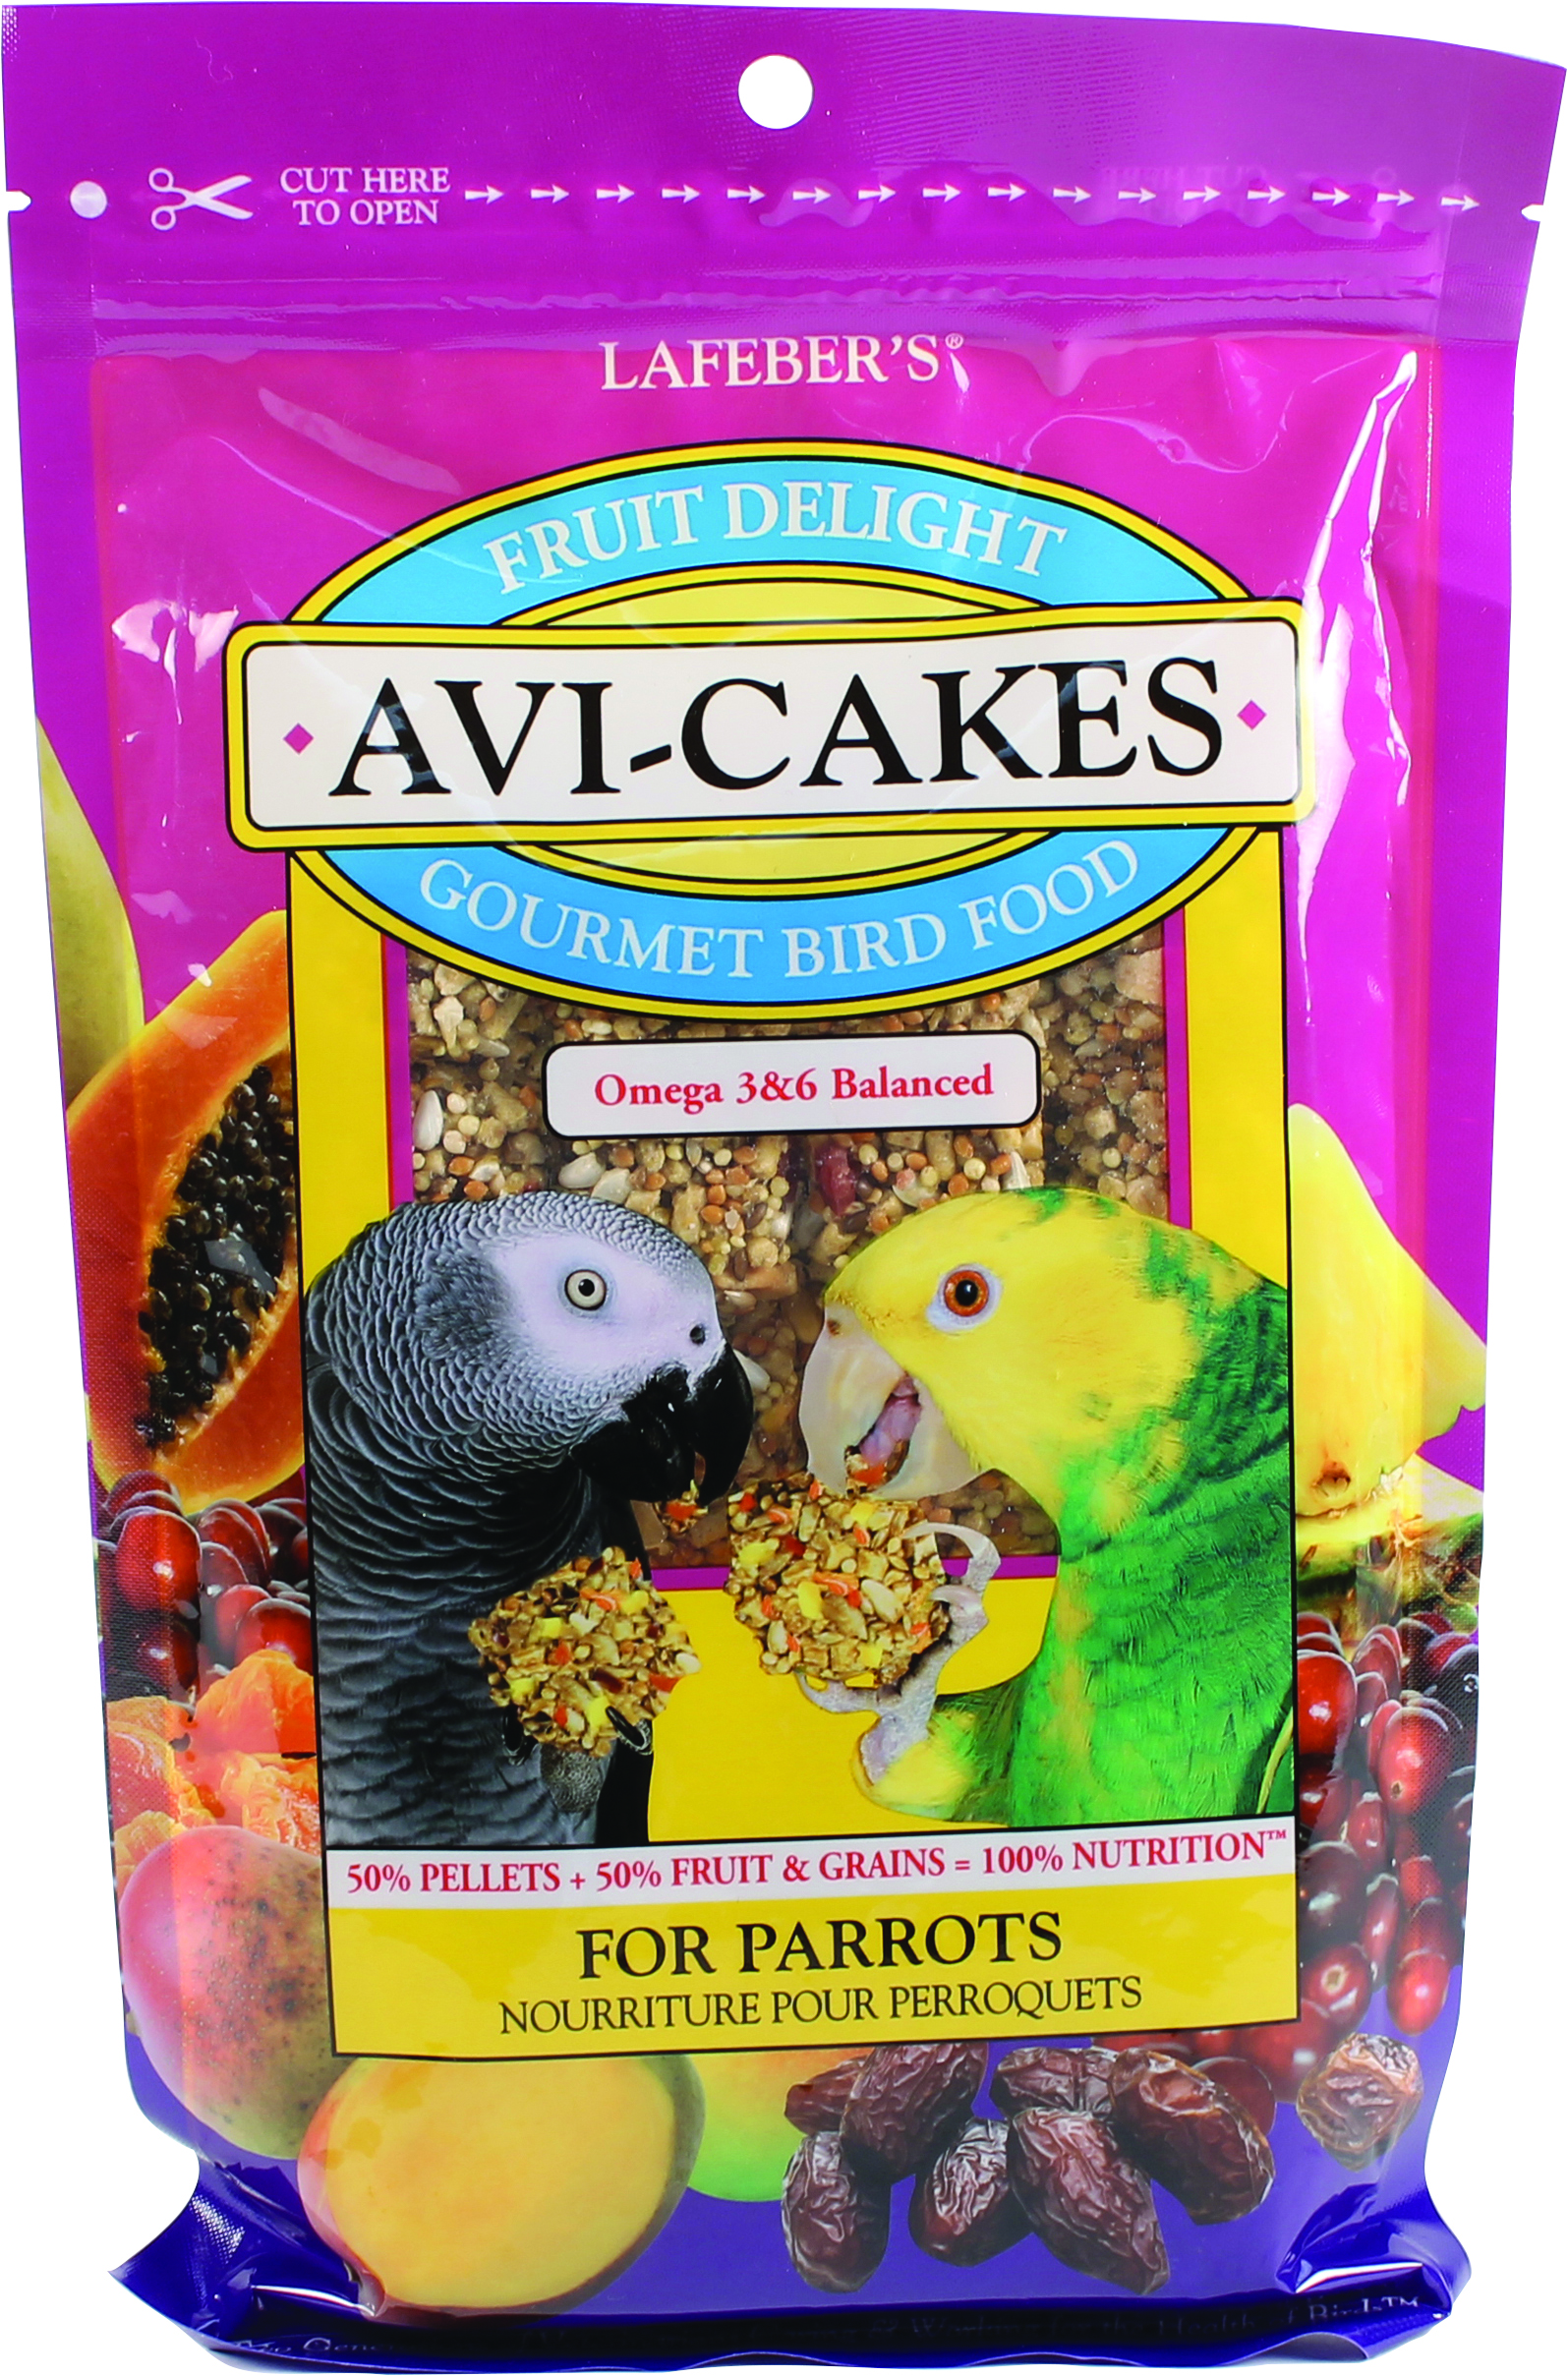 AVI-CAKES FRUIT DELIGHT GOURMET BIRD FOOD